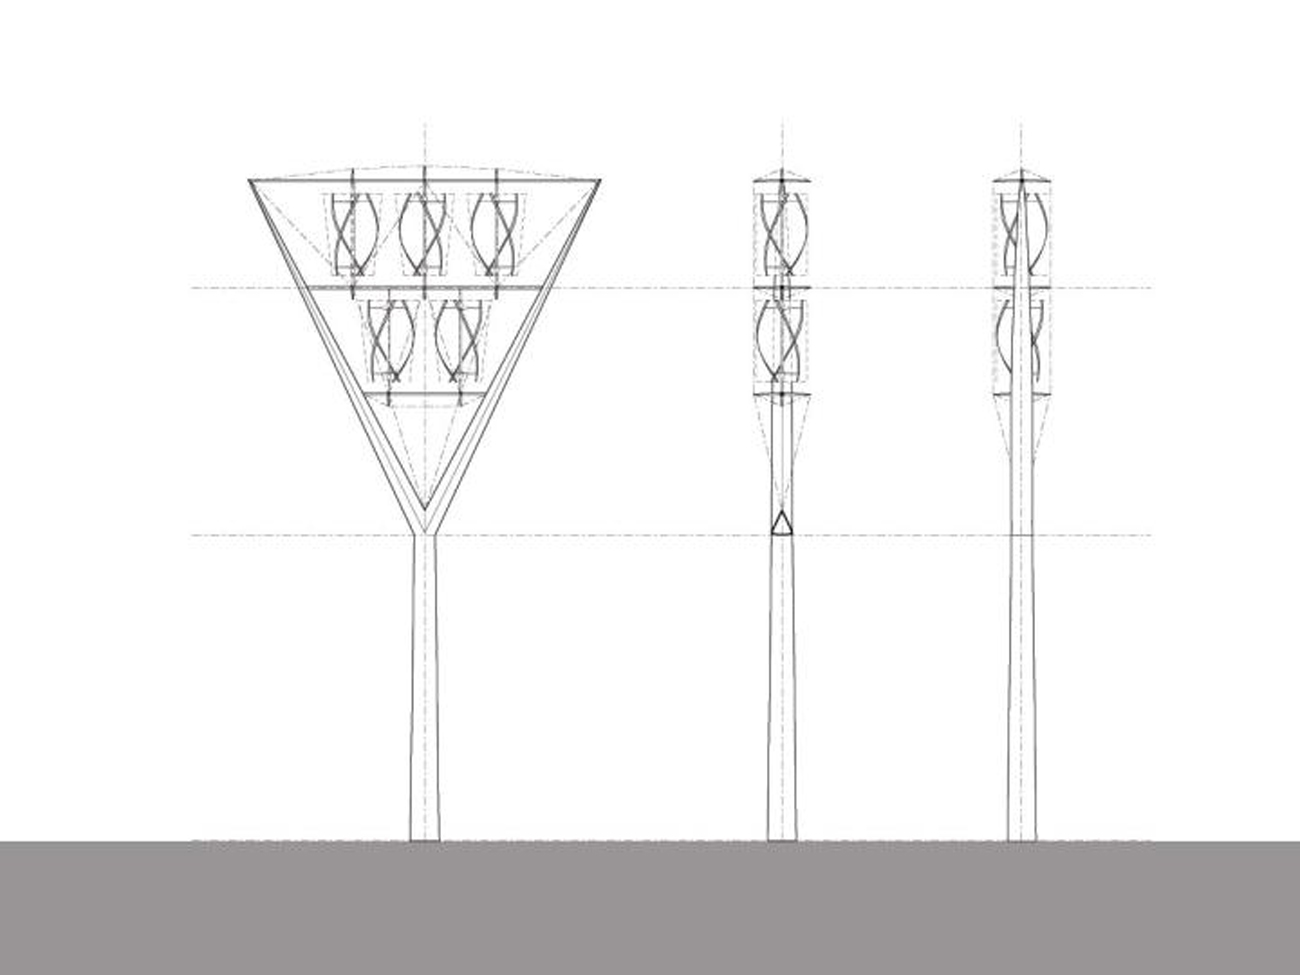 Beacon Elevation Diagrams by Marks Barfield Architects